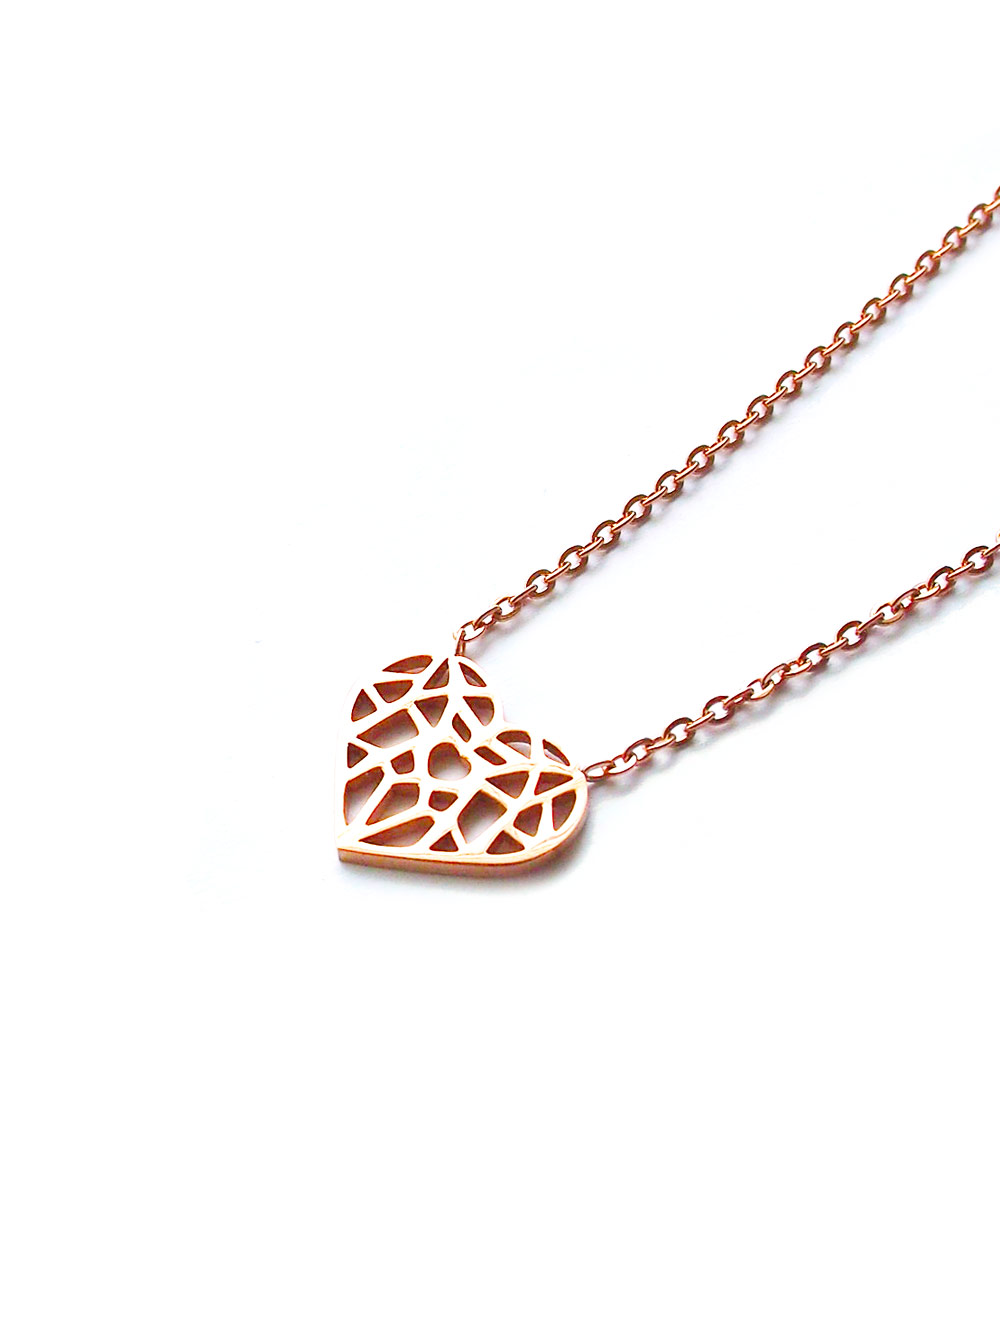 Stainless steel origami heart necklace in rose gold arva acc1060 stainless steel origami heart necklace in aloadofball Images